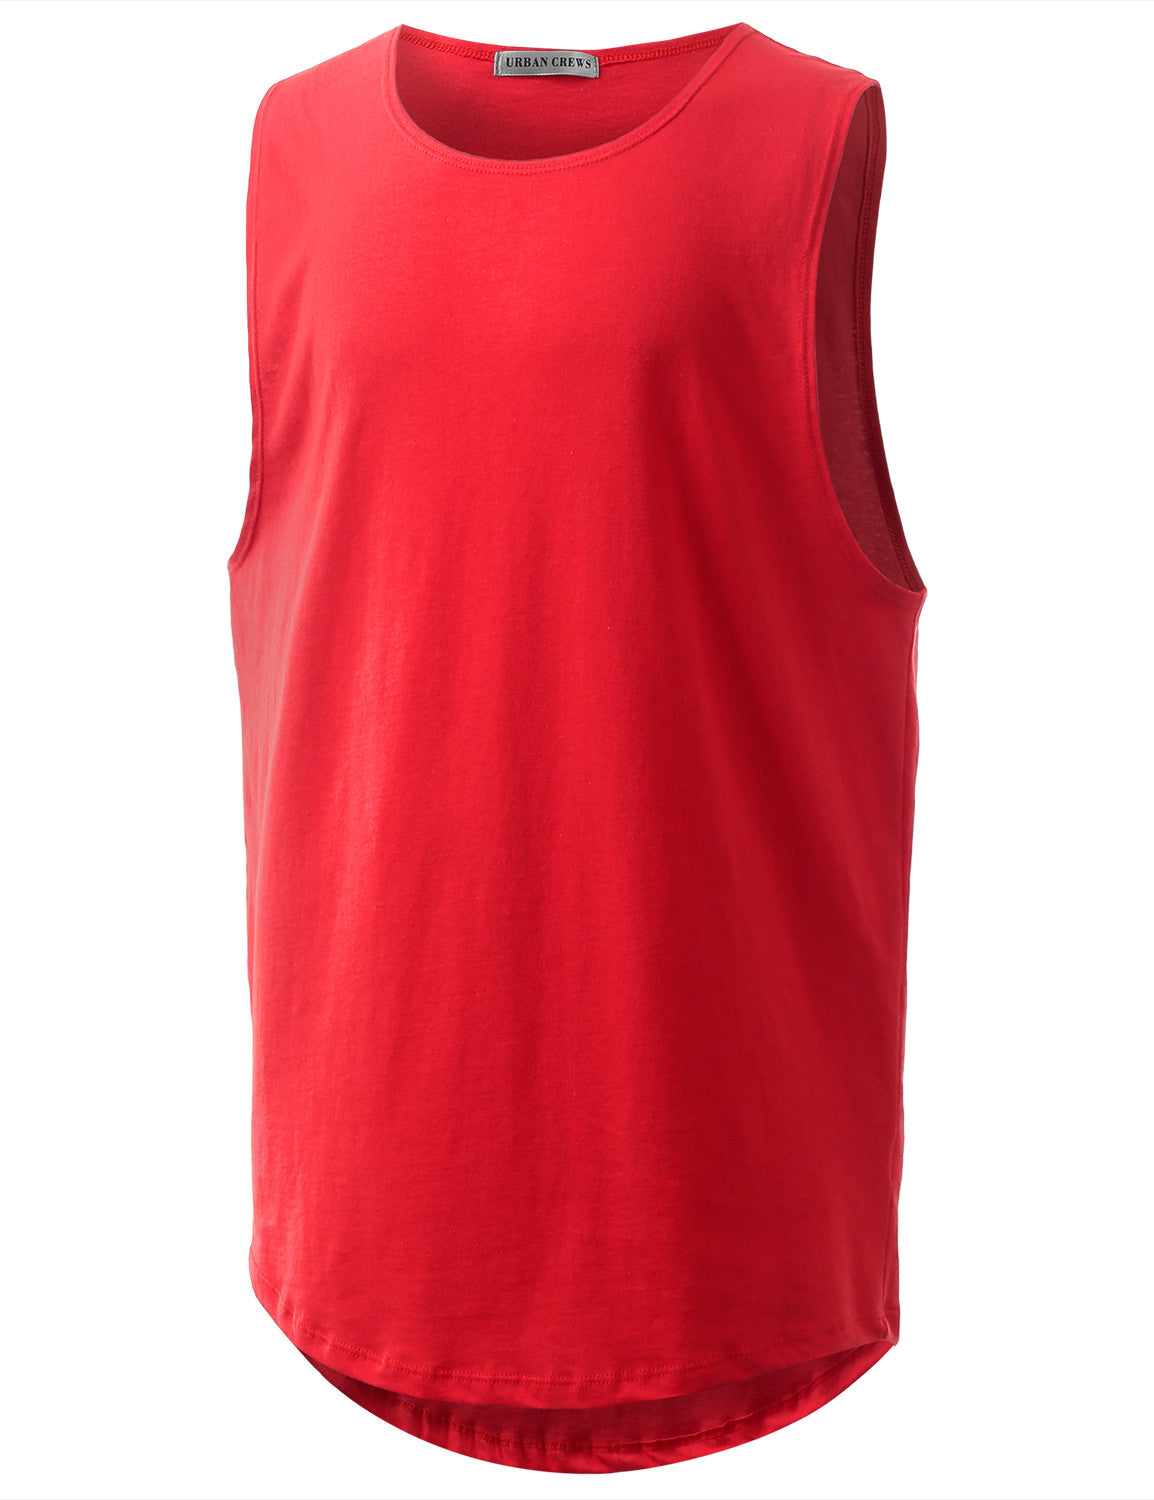 RED Basic Longline Muscle Tank Top Tee - URBANCREWS